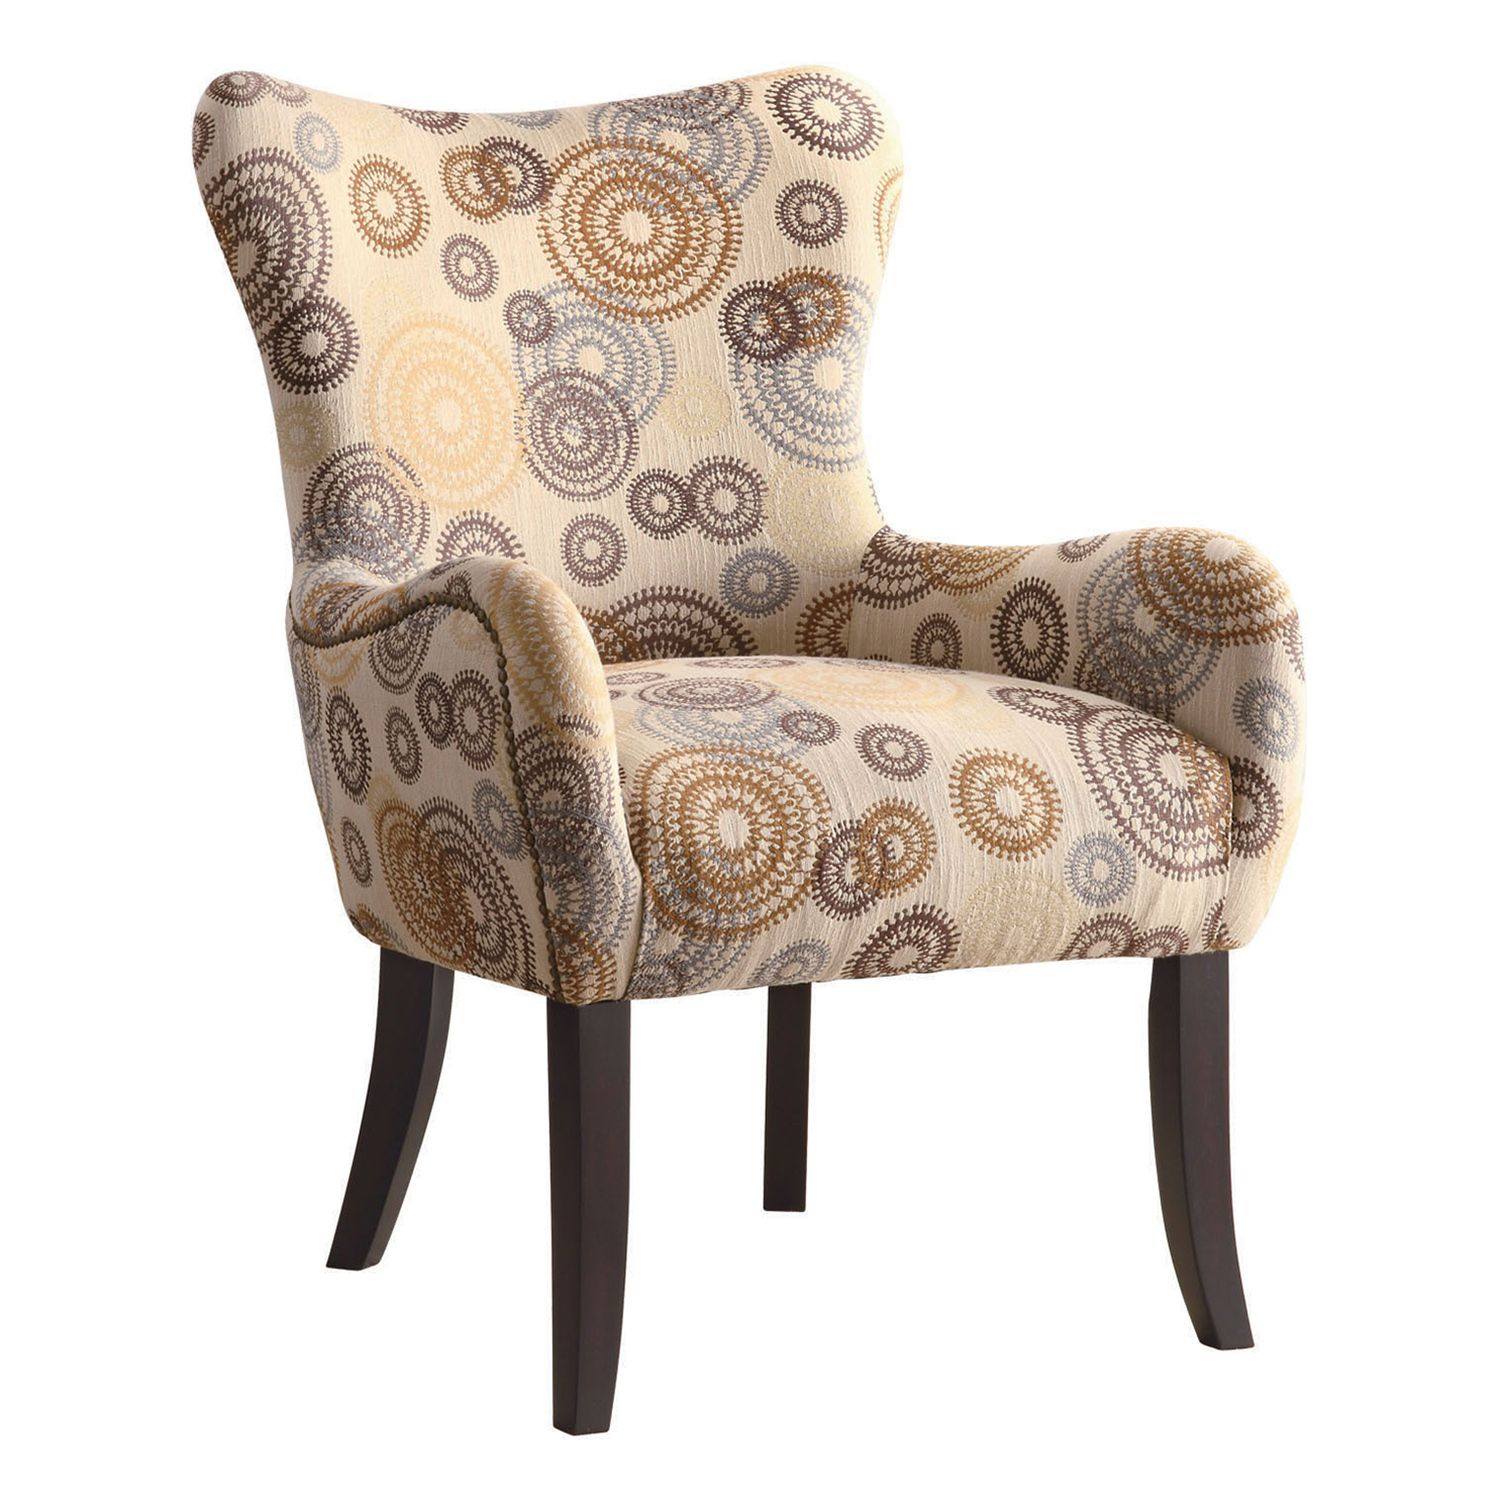 Victorian Accent Chair Latest Victorian Accent Chair With